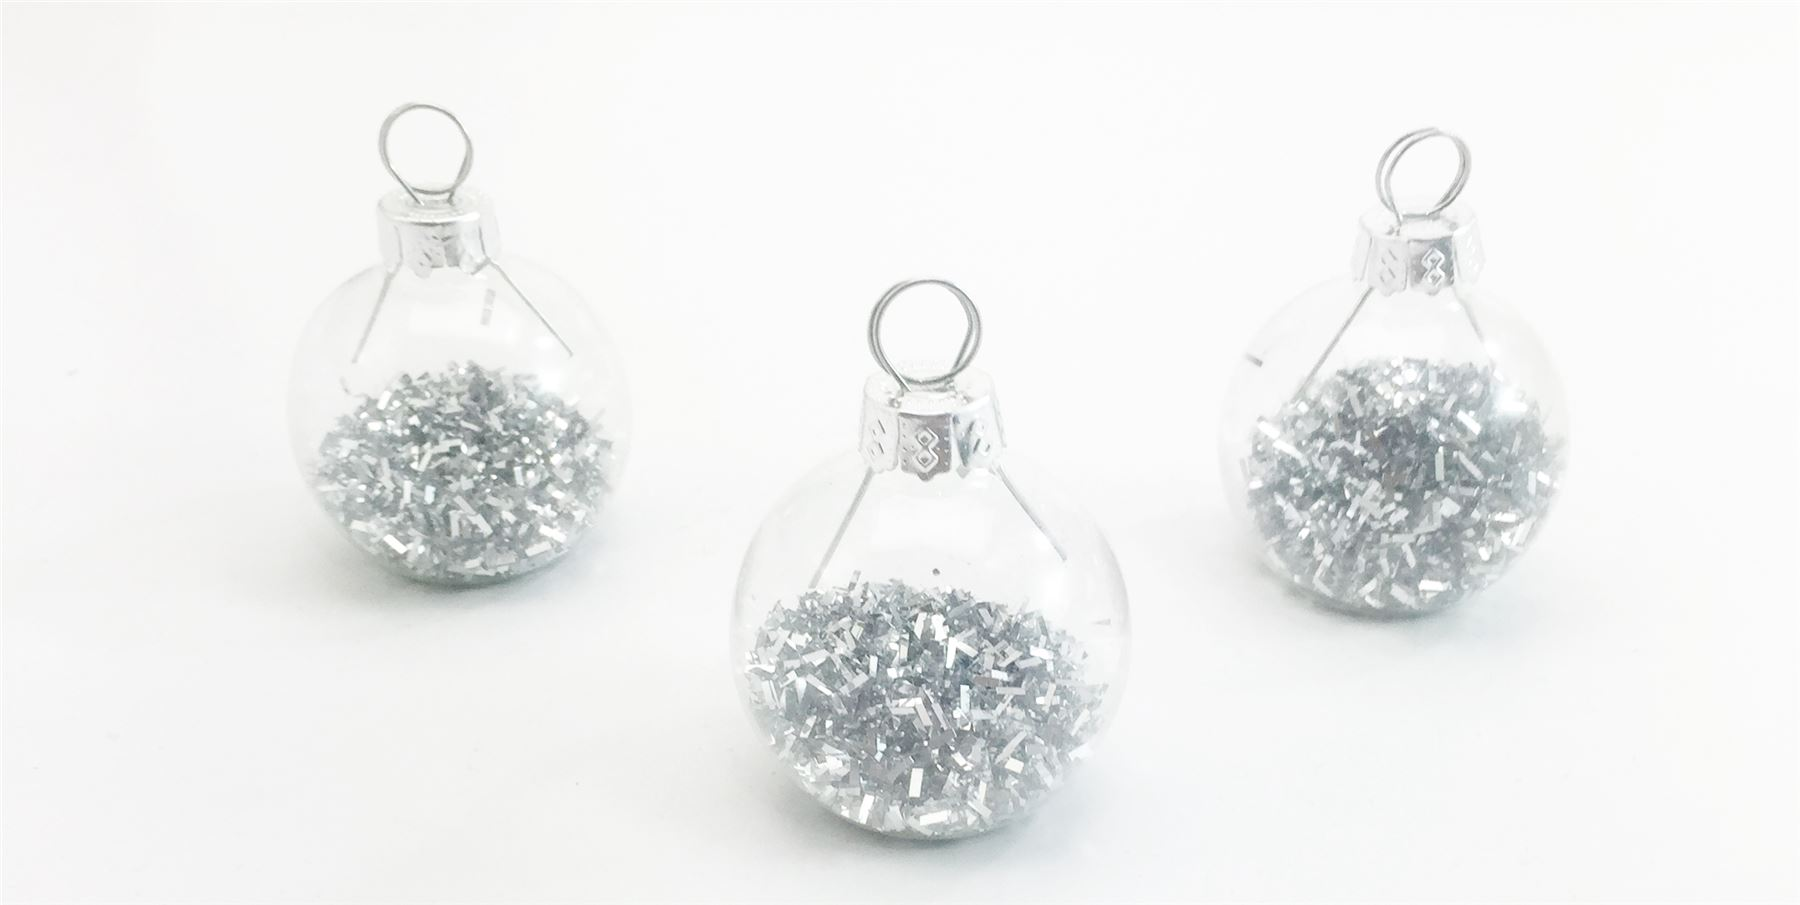 6 silver glitter tinsel xmas ball baubles place card holders wedding table decor